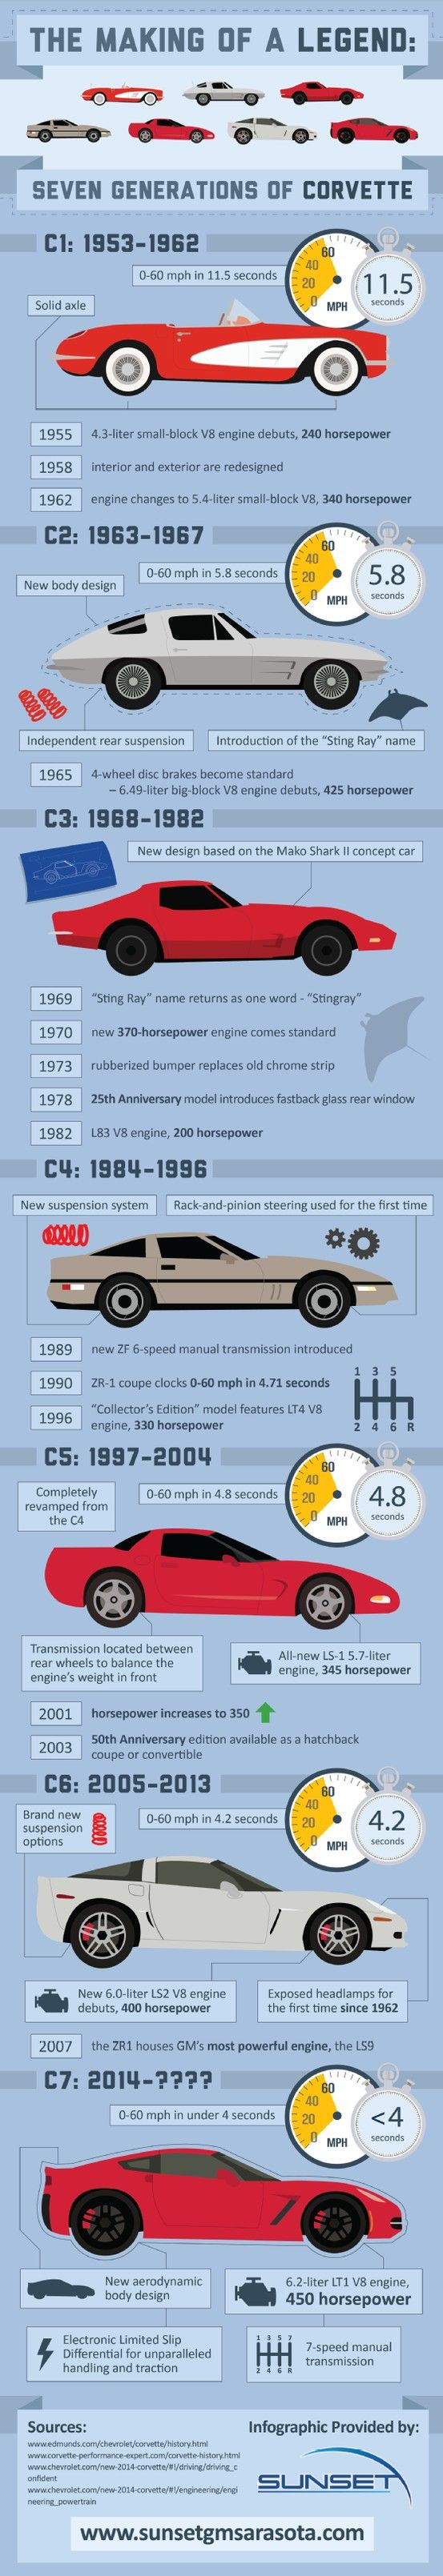 Best Images About Classic Cars On Pinterest